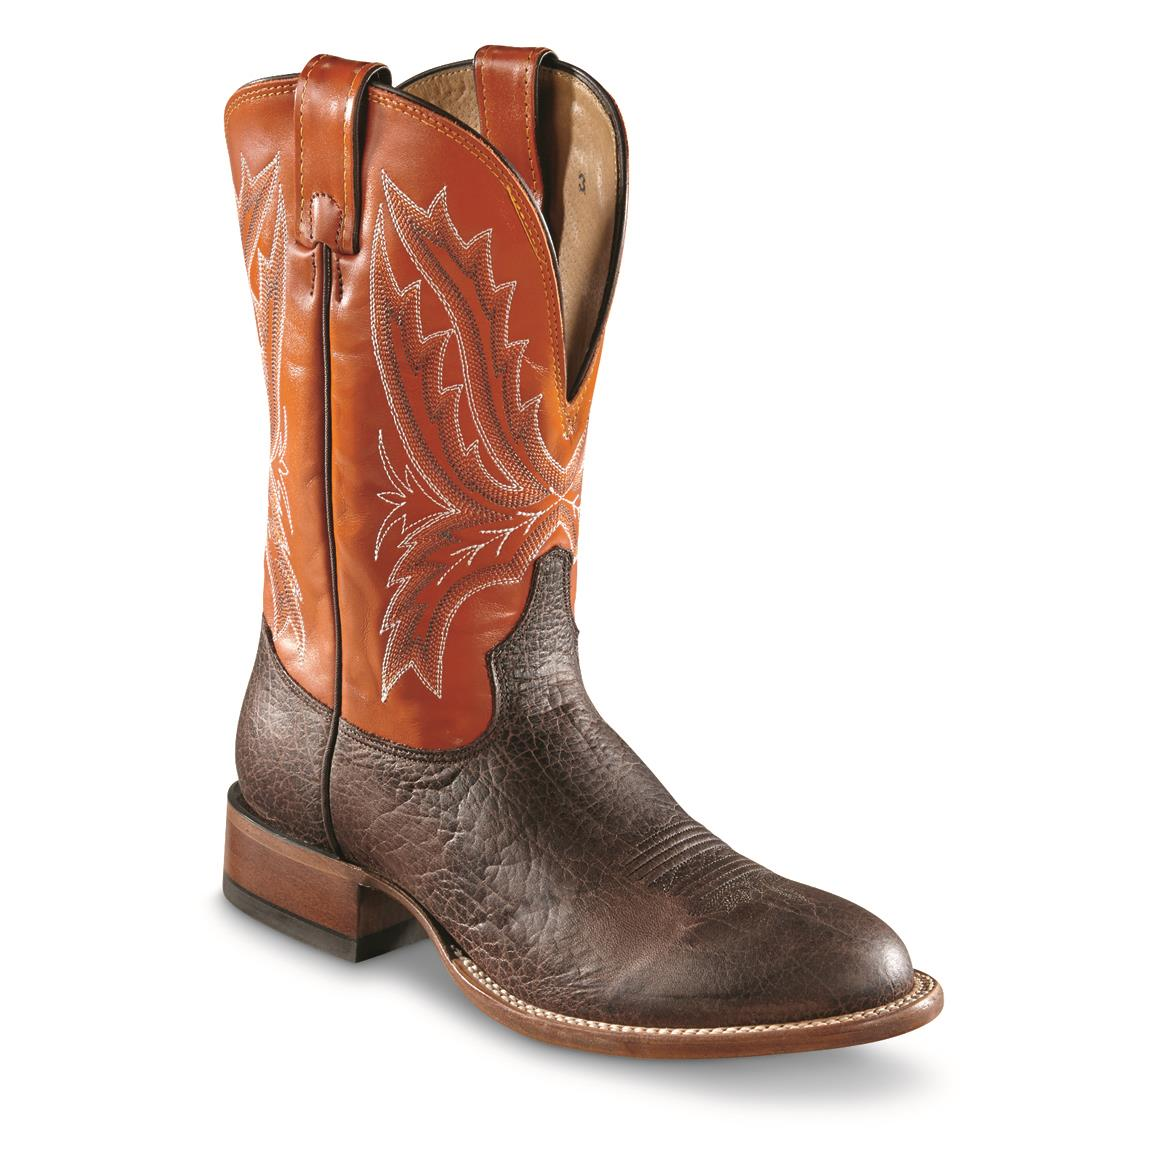 Mens Tony Lama Men's Grizzly WP Composite Toe Western Boot Sale Outlet Store Size 46